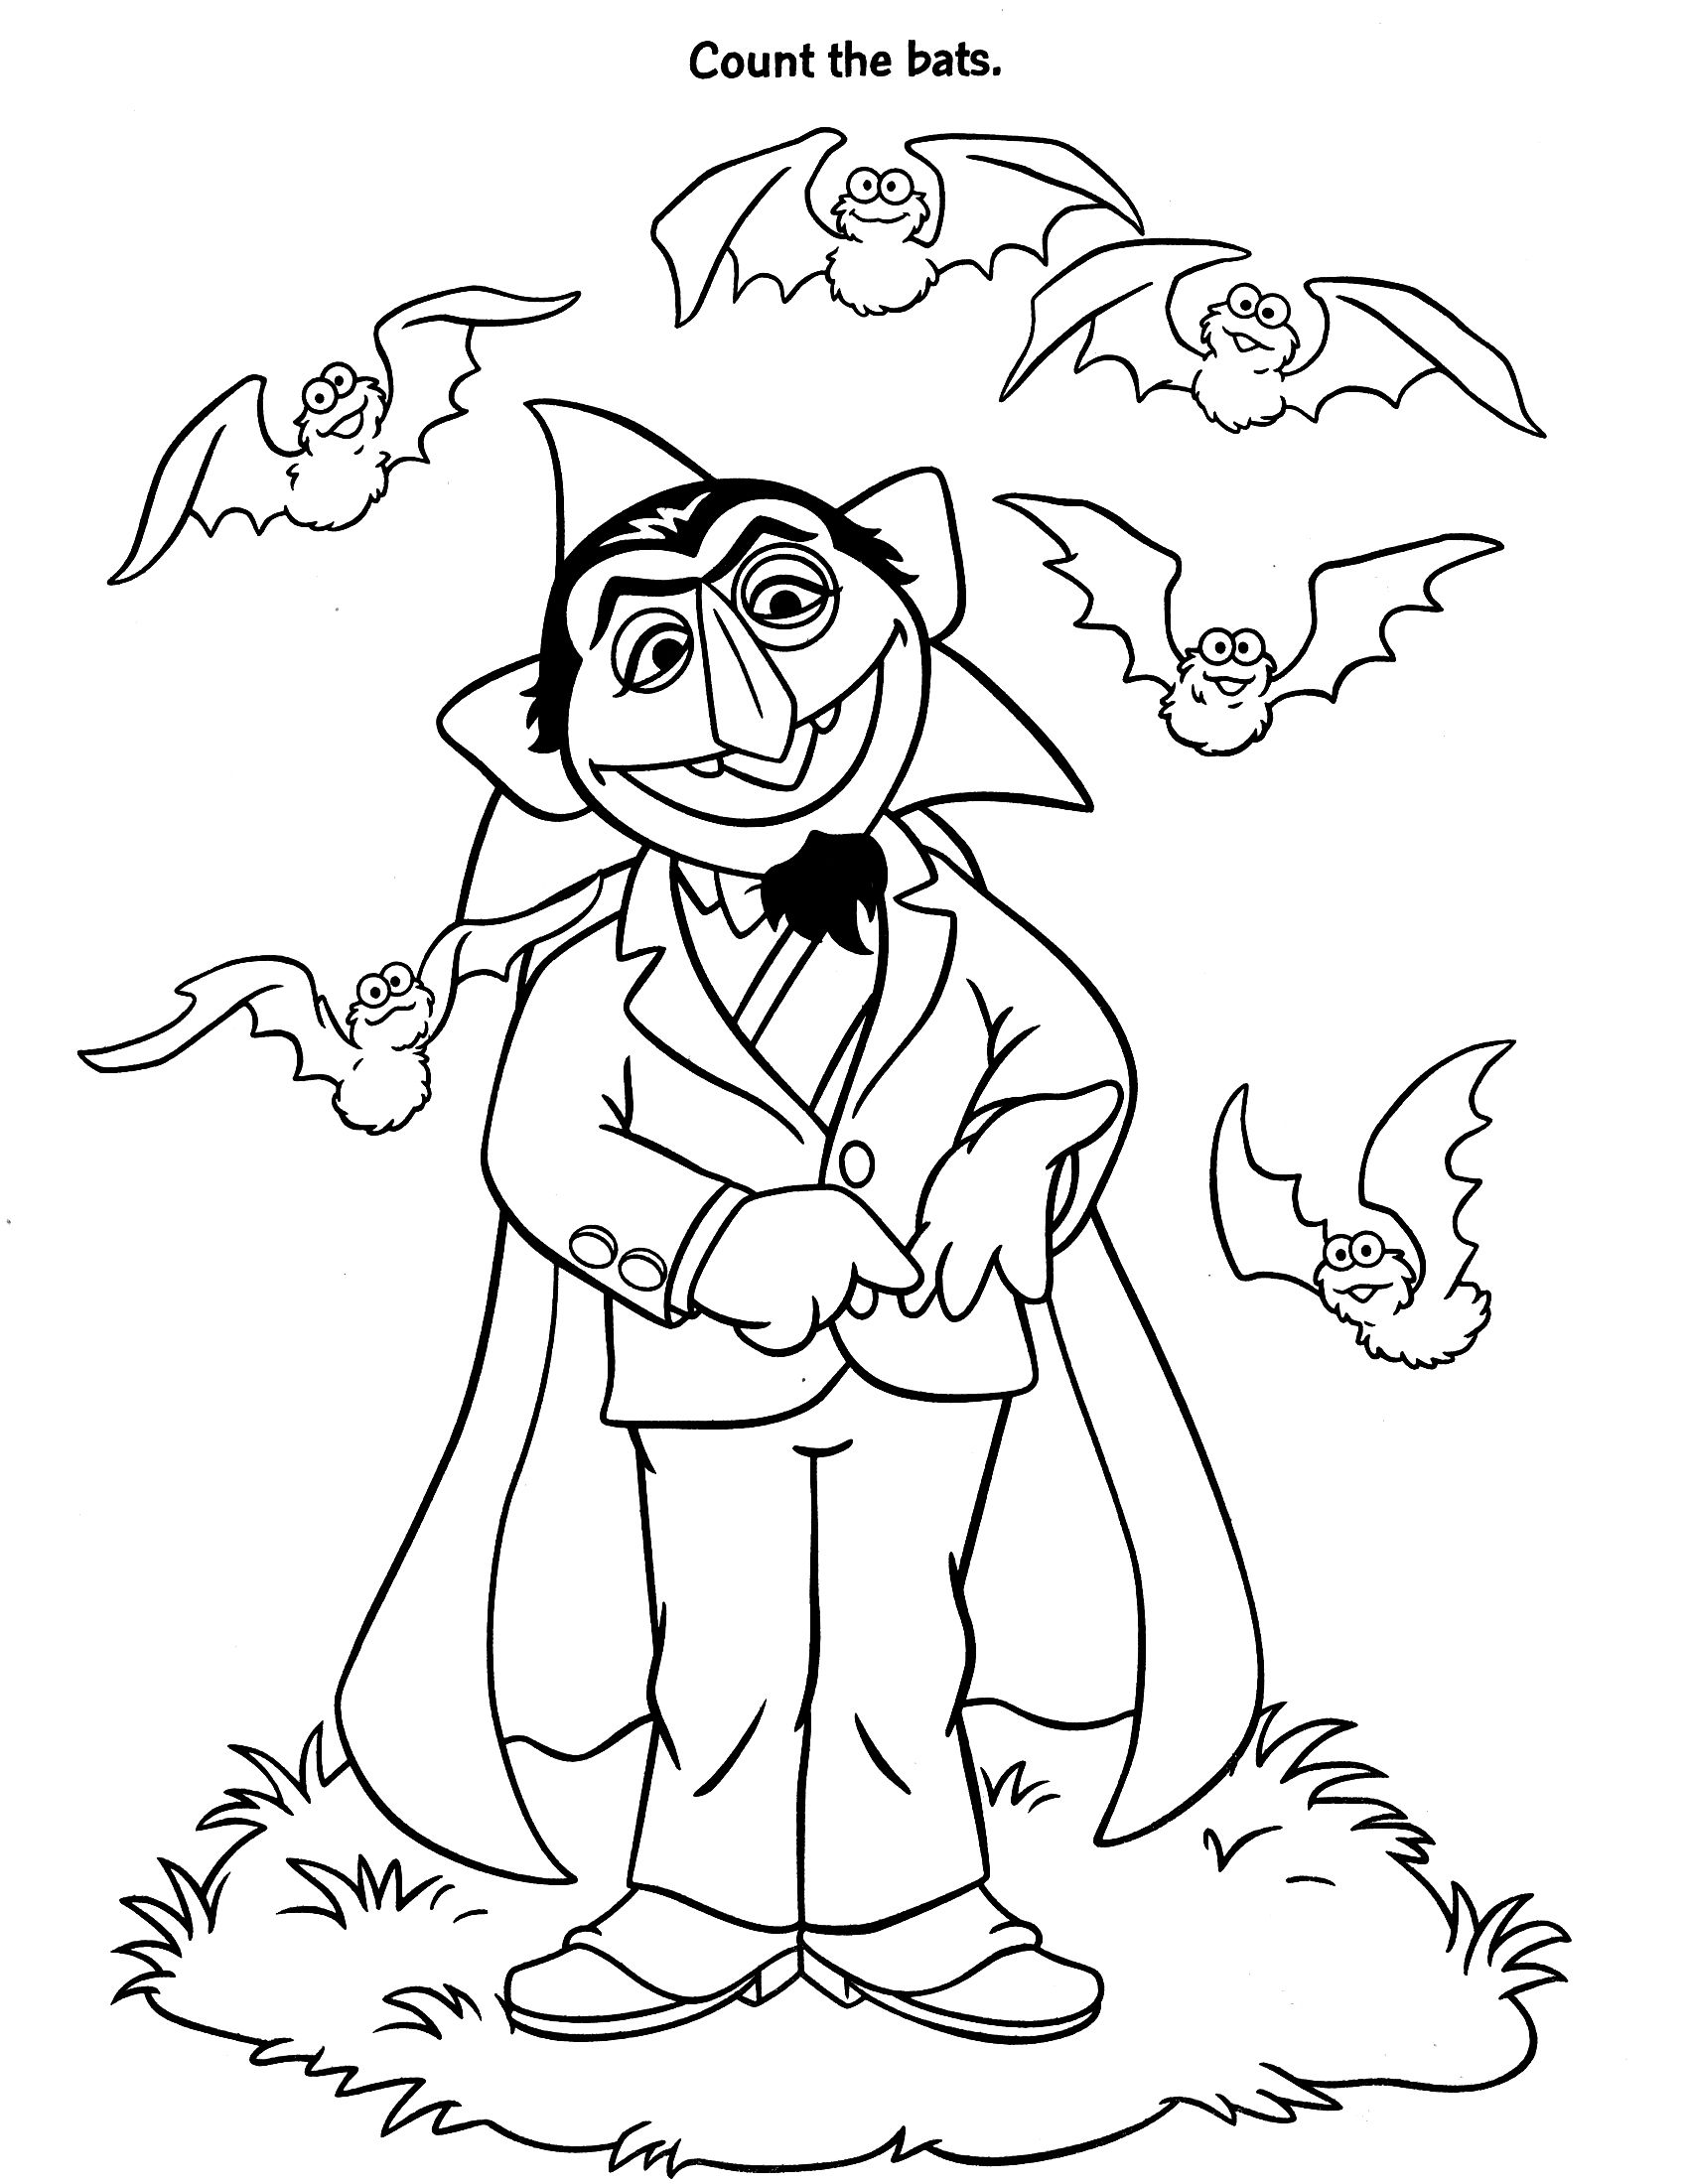 coloring pages of sesame street characters sesame street to color for kids sesame street kids coloring street characters of sesame pages